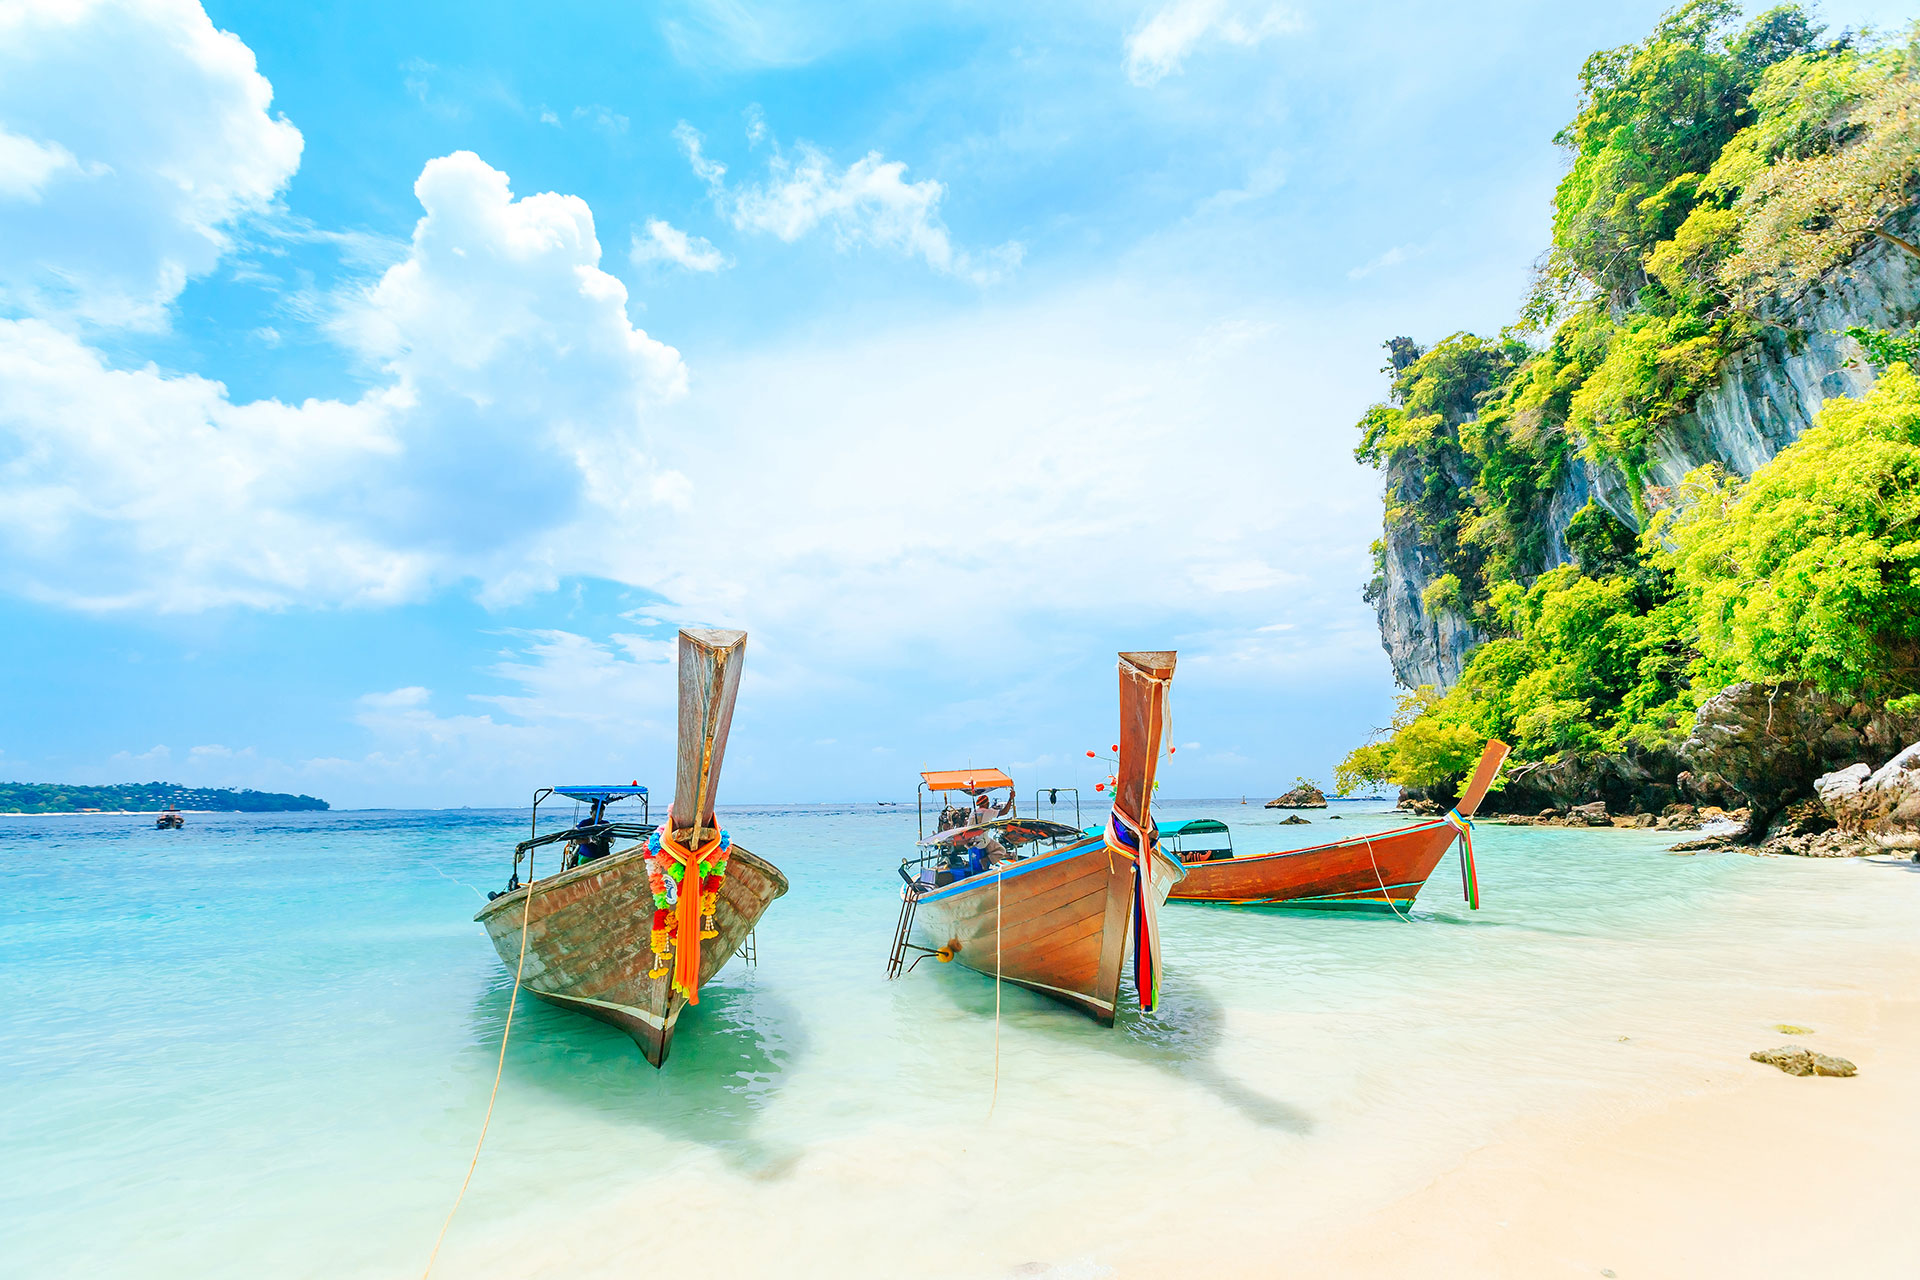 Thailand; Courtesy of CHAINFOTO24/Shutterstock.com